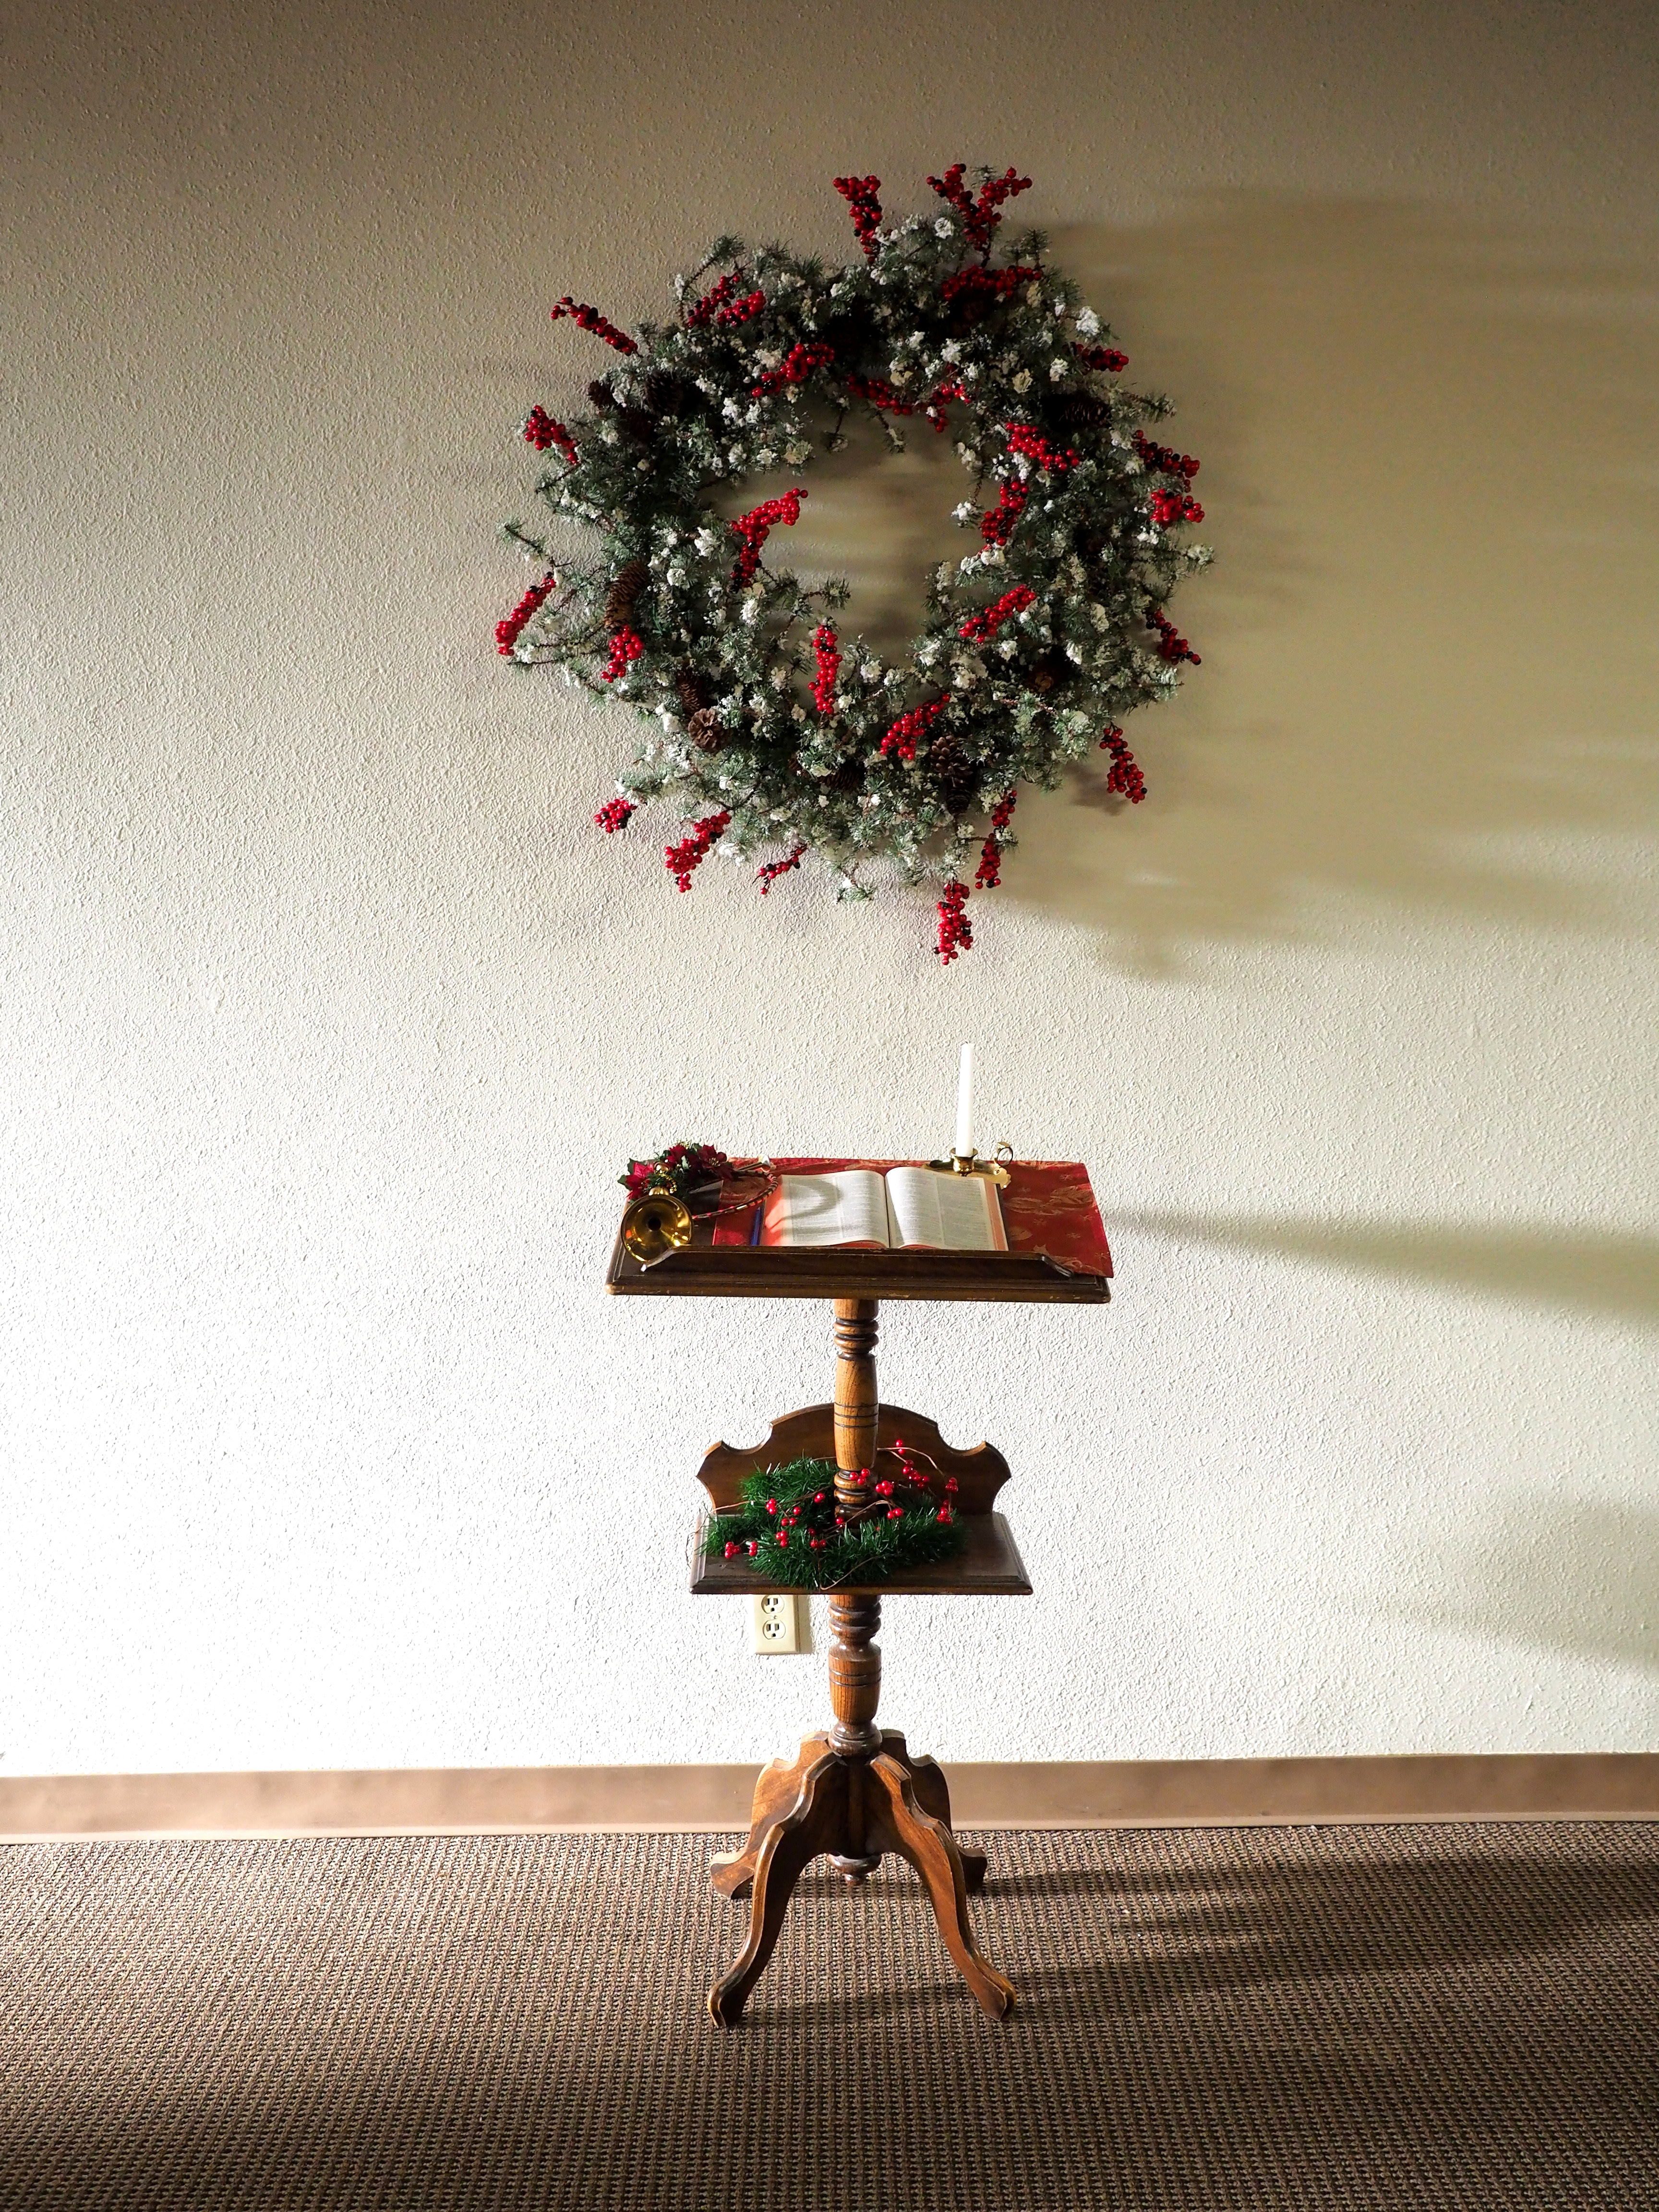 Brown Wooden 2-layer Book Rack, Indoors, White wall, Wood, Wreath, HQ Photo